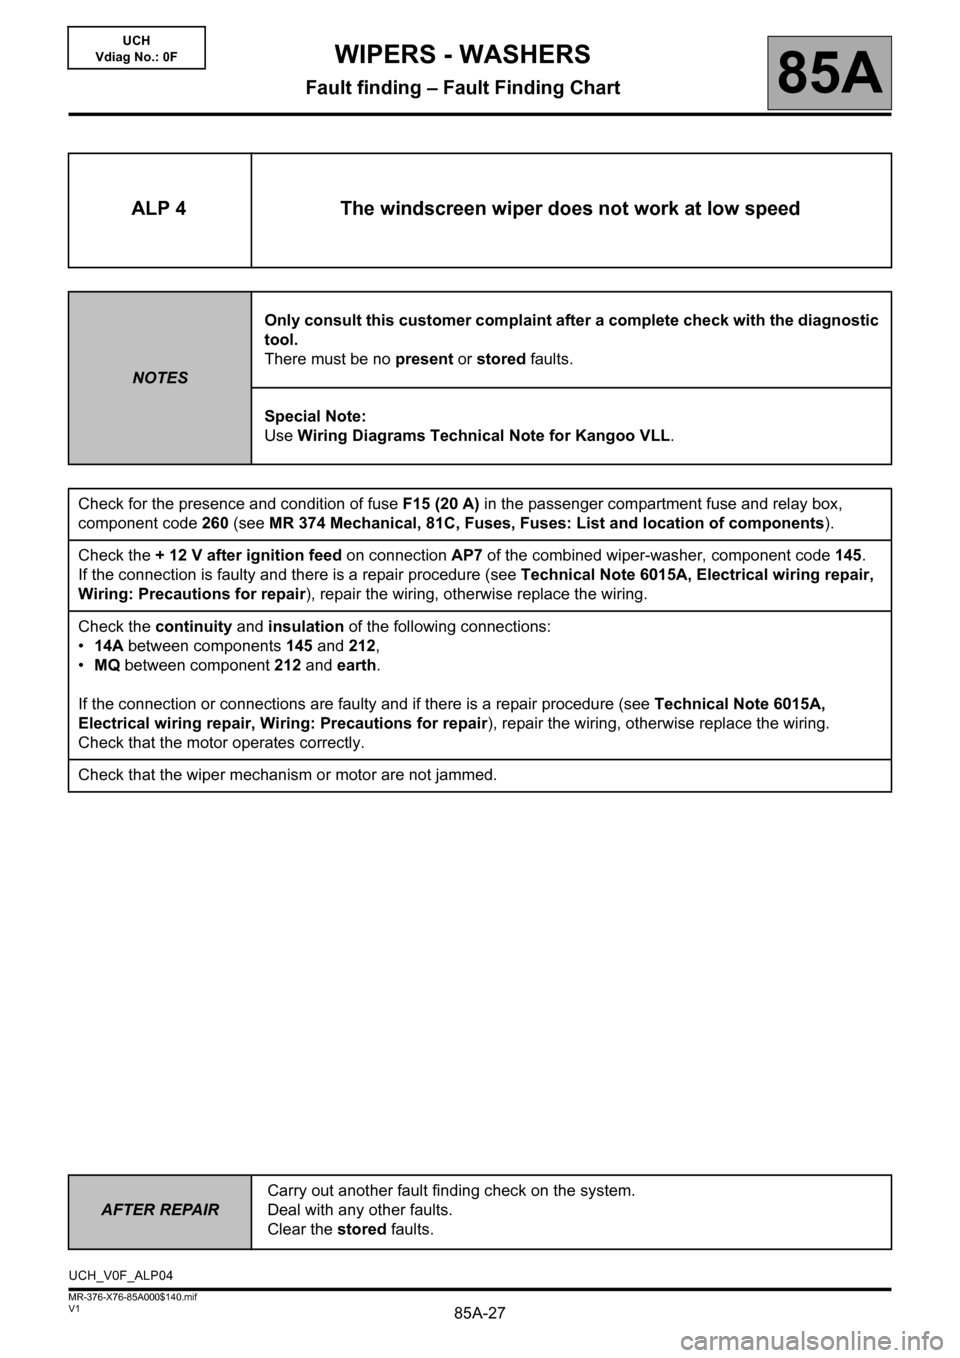 RENAULT KANGOO 2013 X61 / 2.G Wipers And Washers Workshop Manual, Page 27